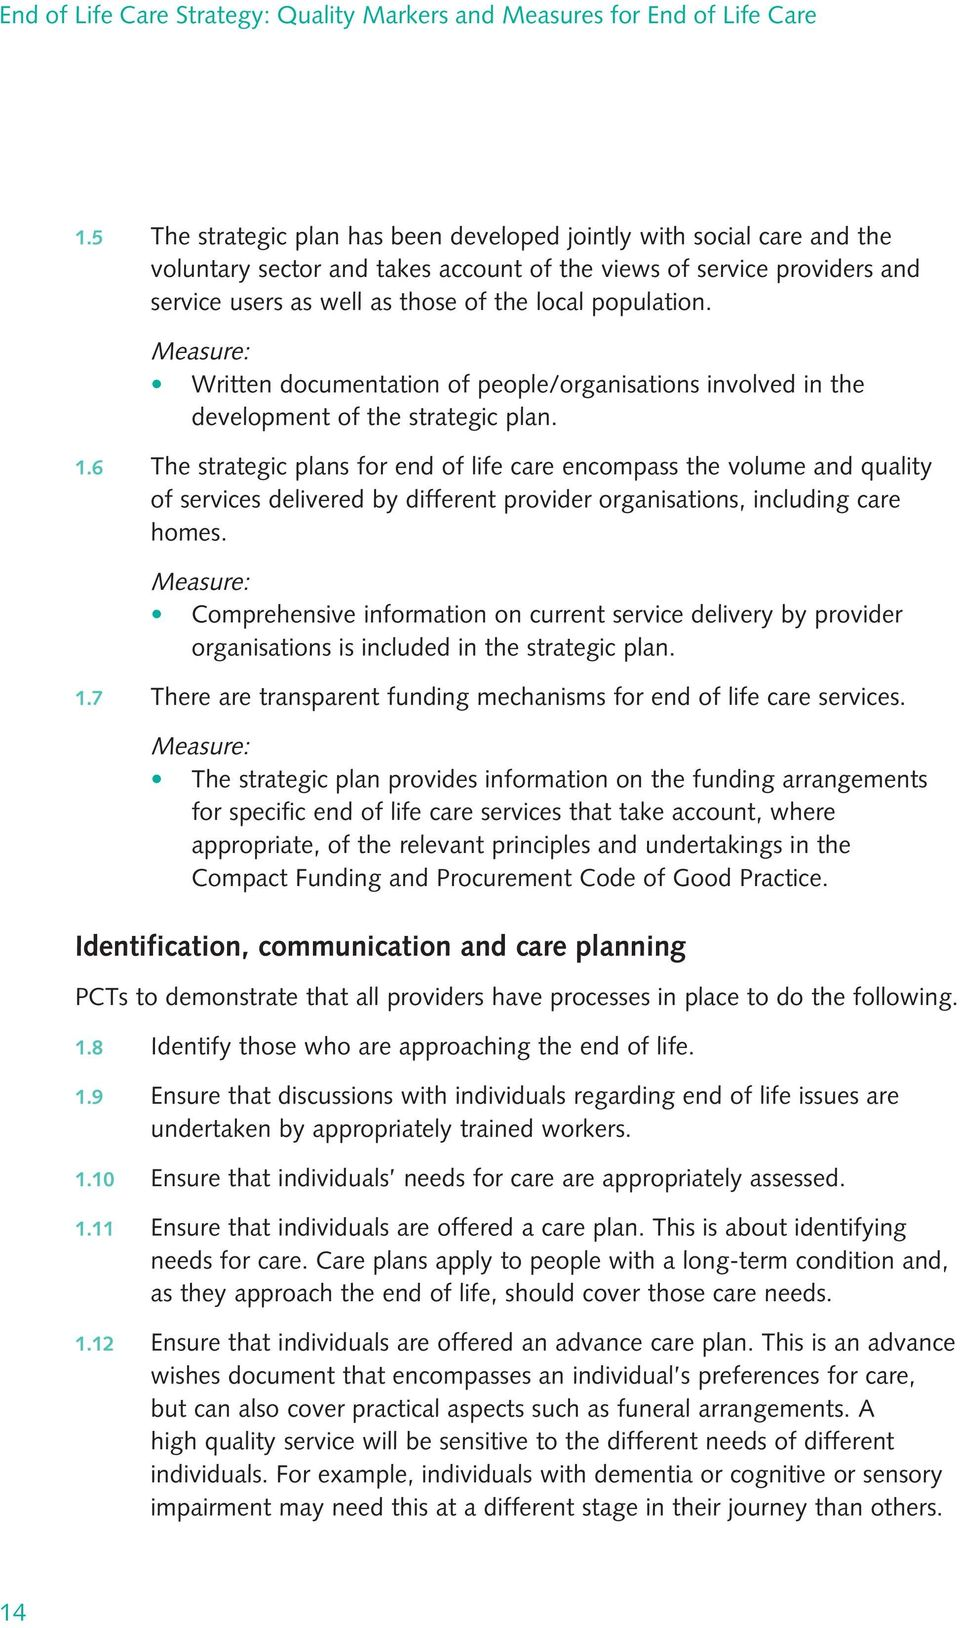 6 The strategic plans for end of life care encompass the volume and quality of services delivered by different provider organisations, including care homes.